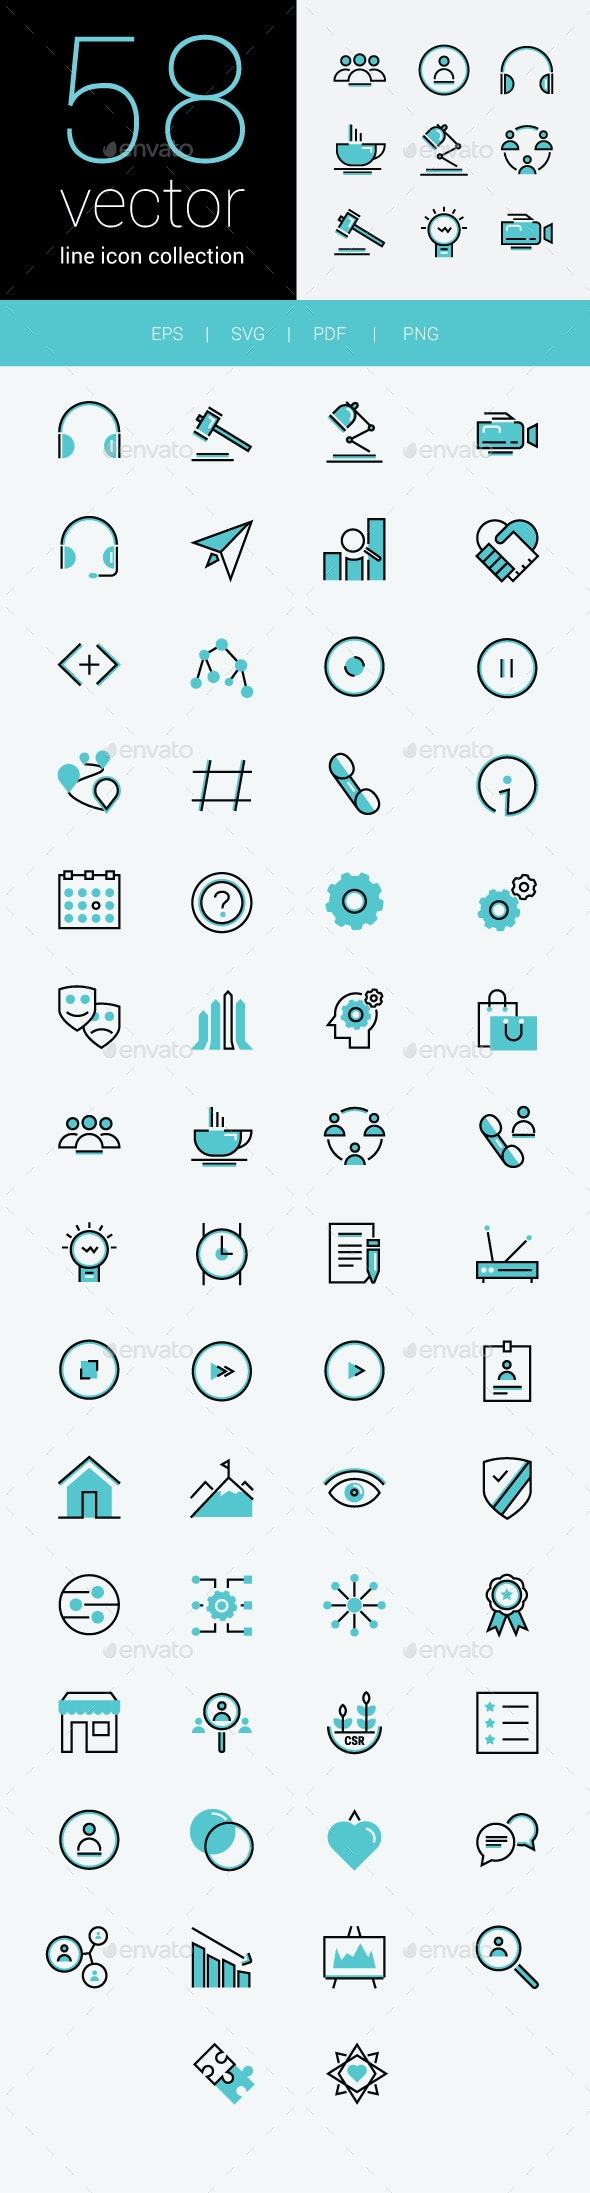 BPO (Business process outsourcing) Icon Collection - Icons